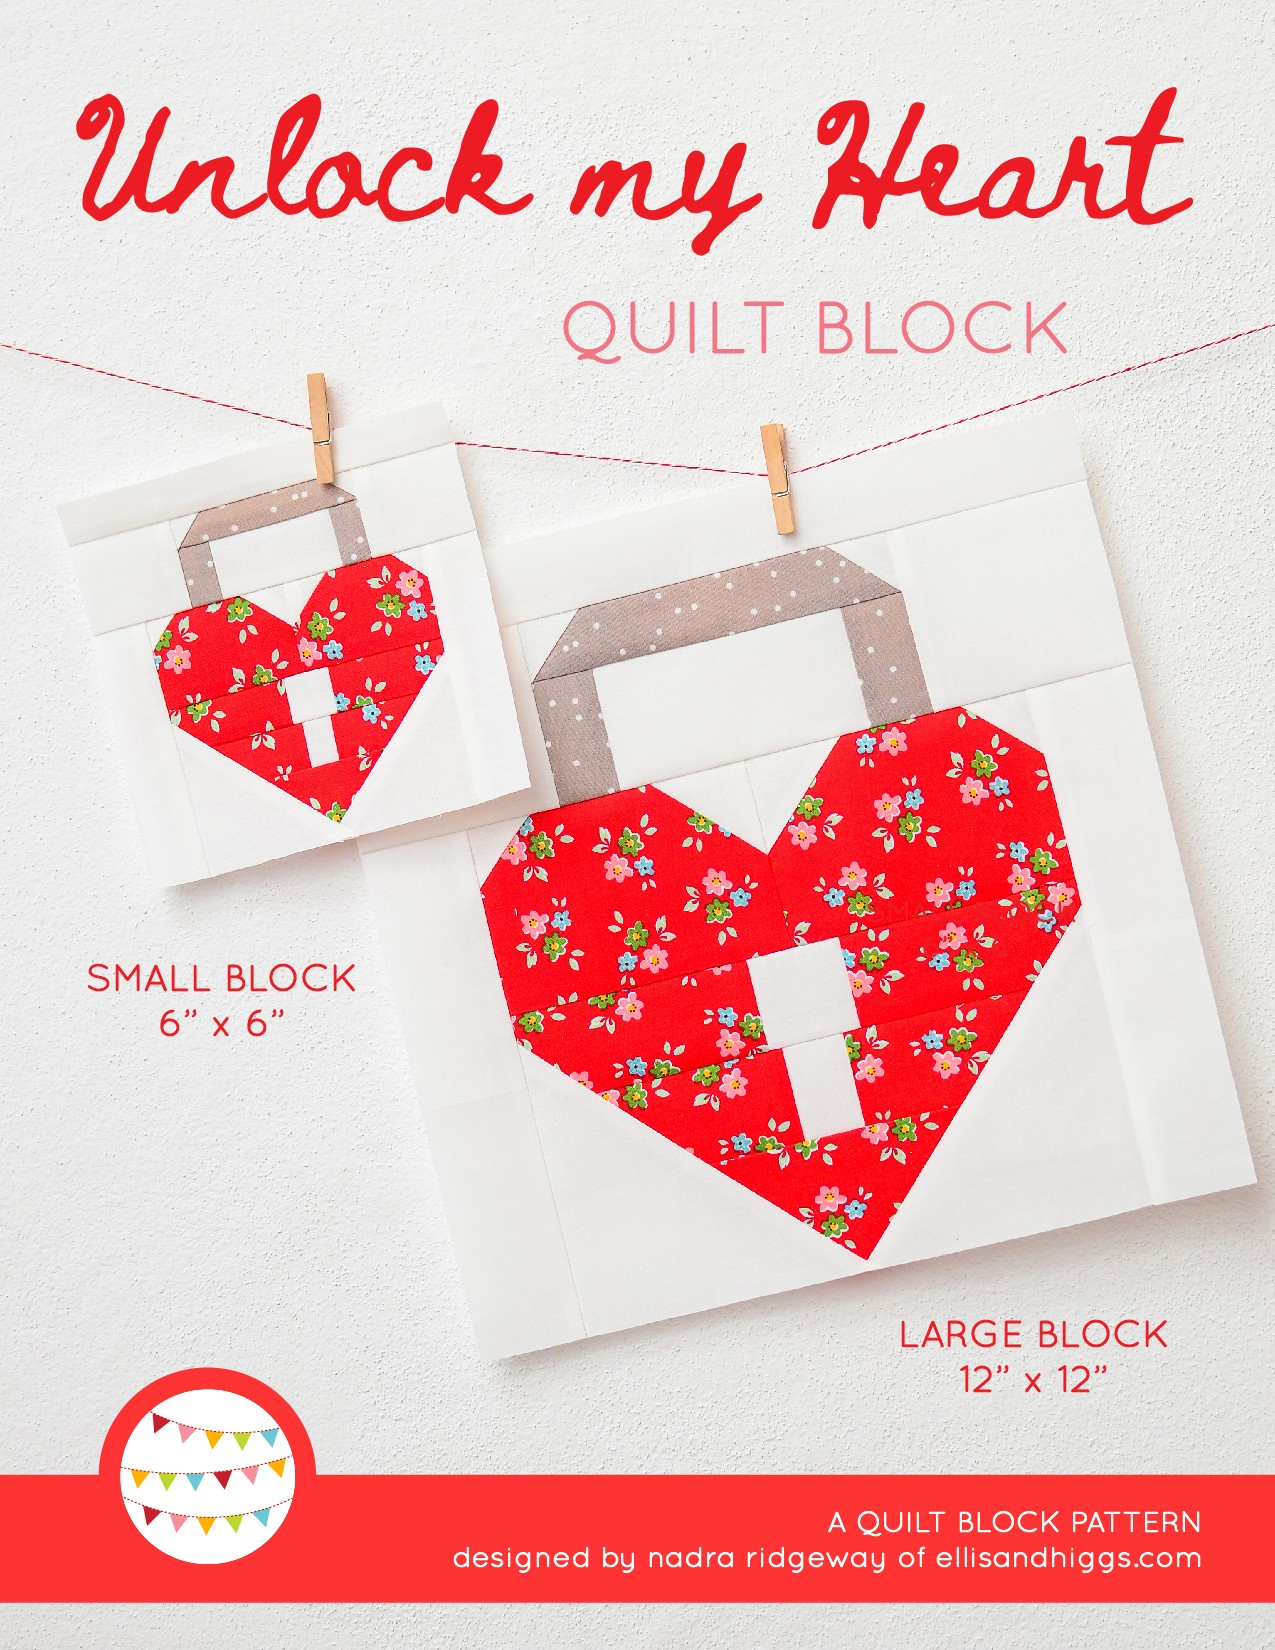 Padlock Heart quilt block in two sizes hanging on a wall